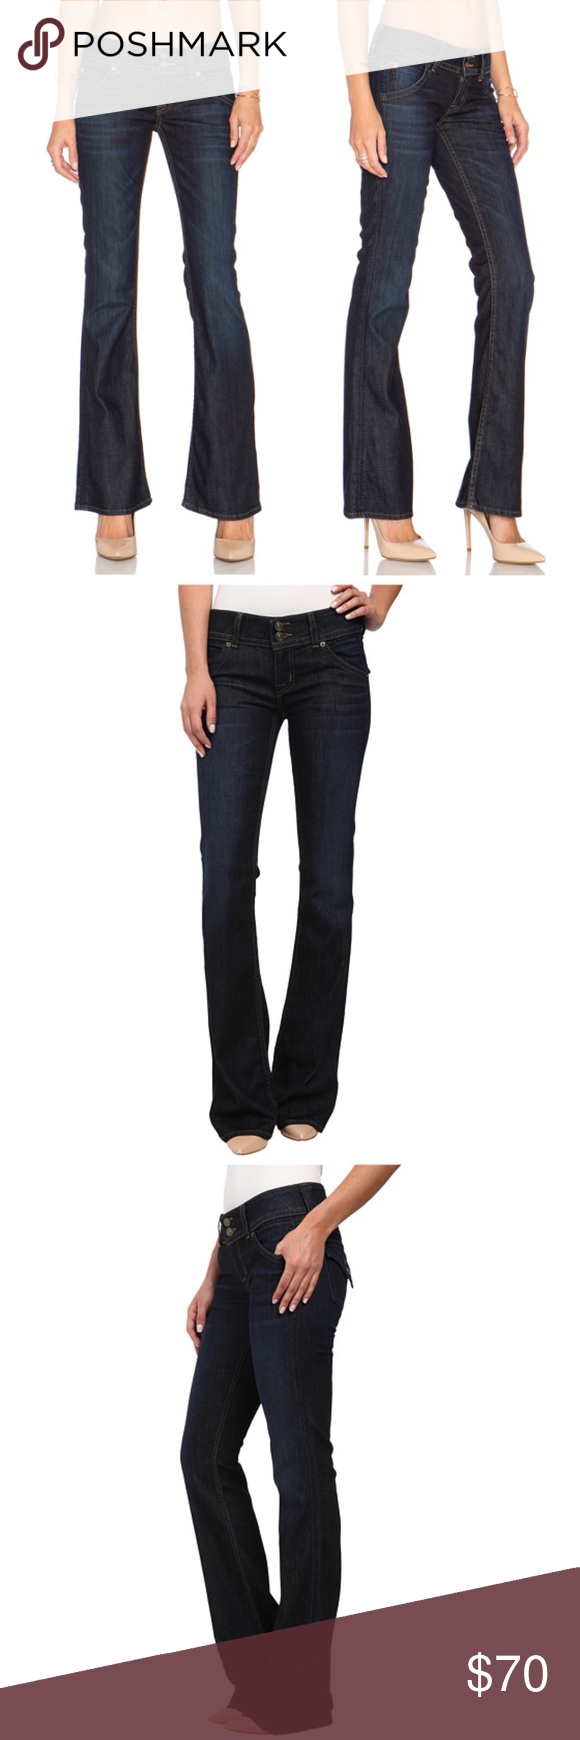 7cb1303ab35 These Hudson Signature Firefly Dark Wash Bootcut Blue Jeans are so  flattering!